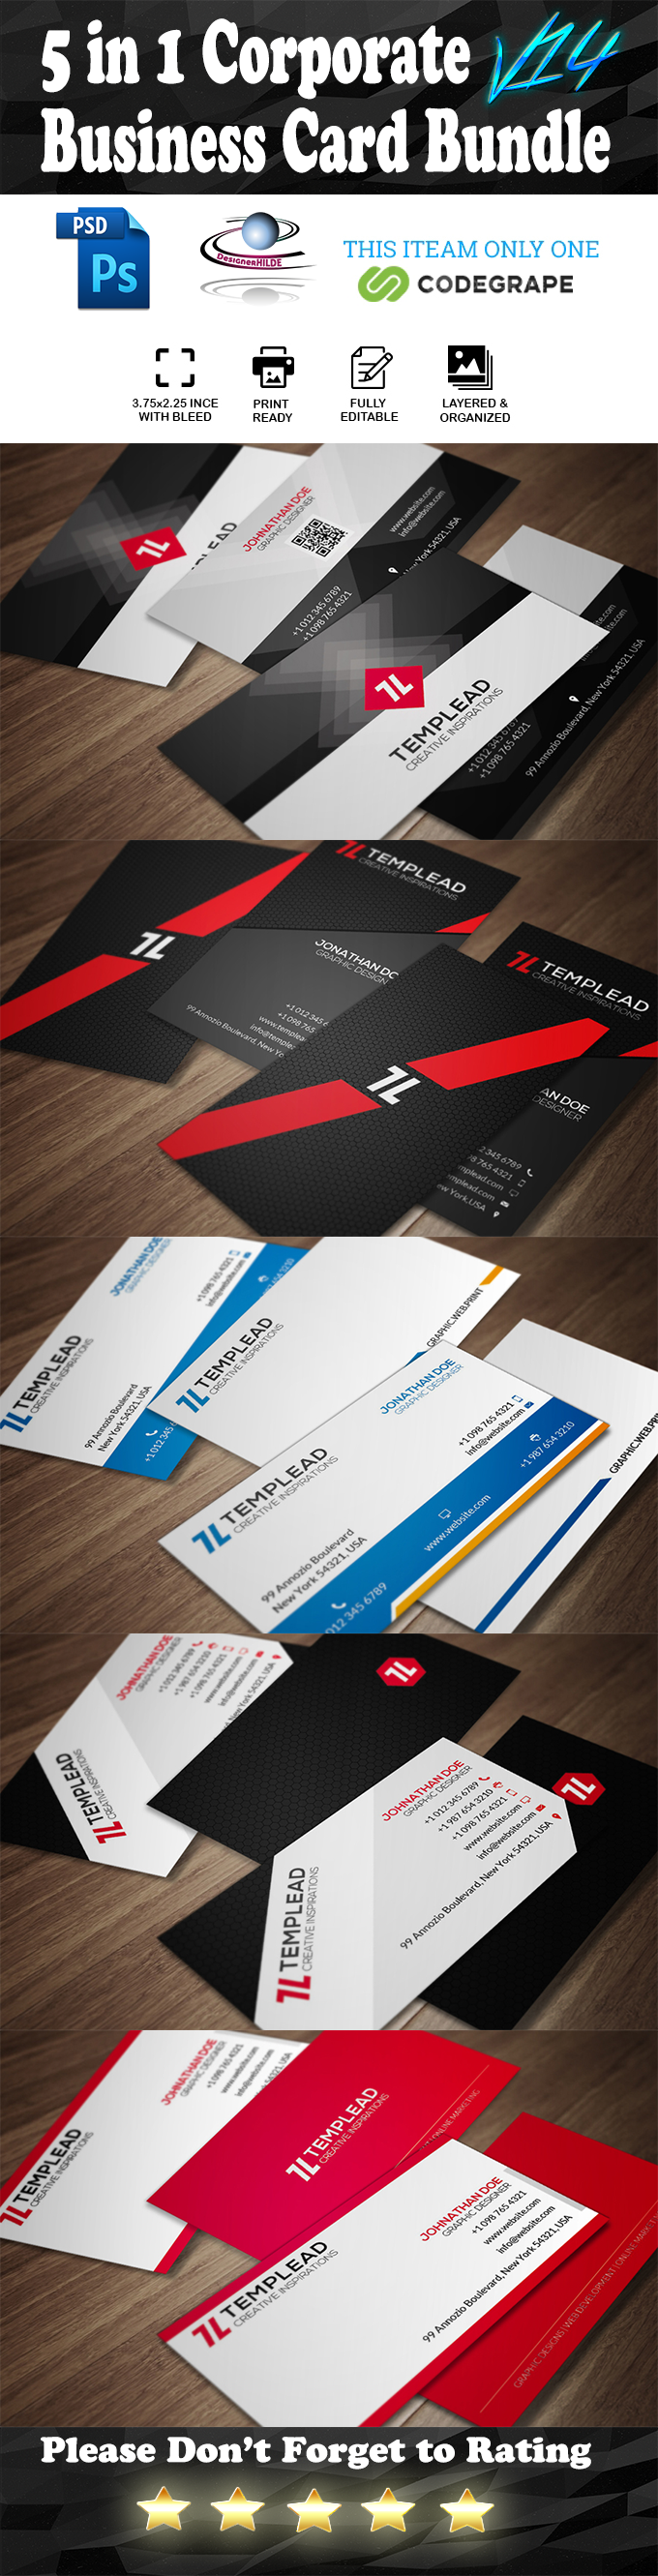 5 in 1 Corporate Business Card Bundle V. 14